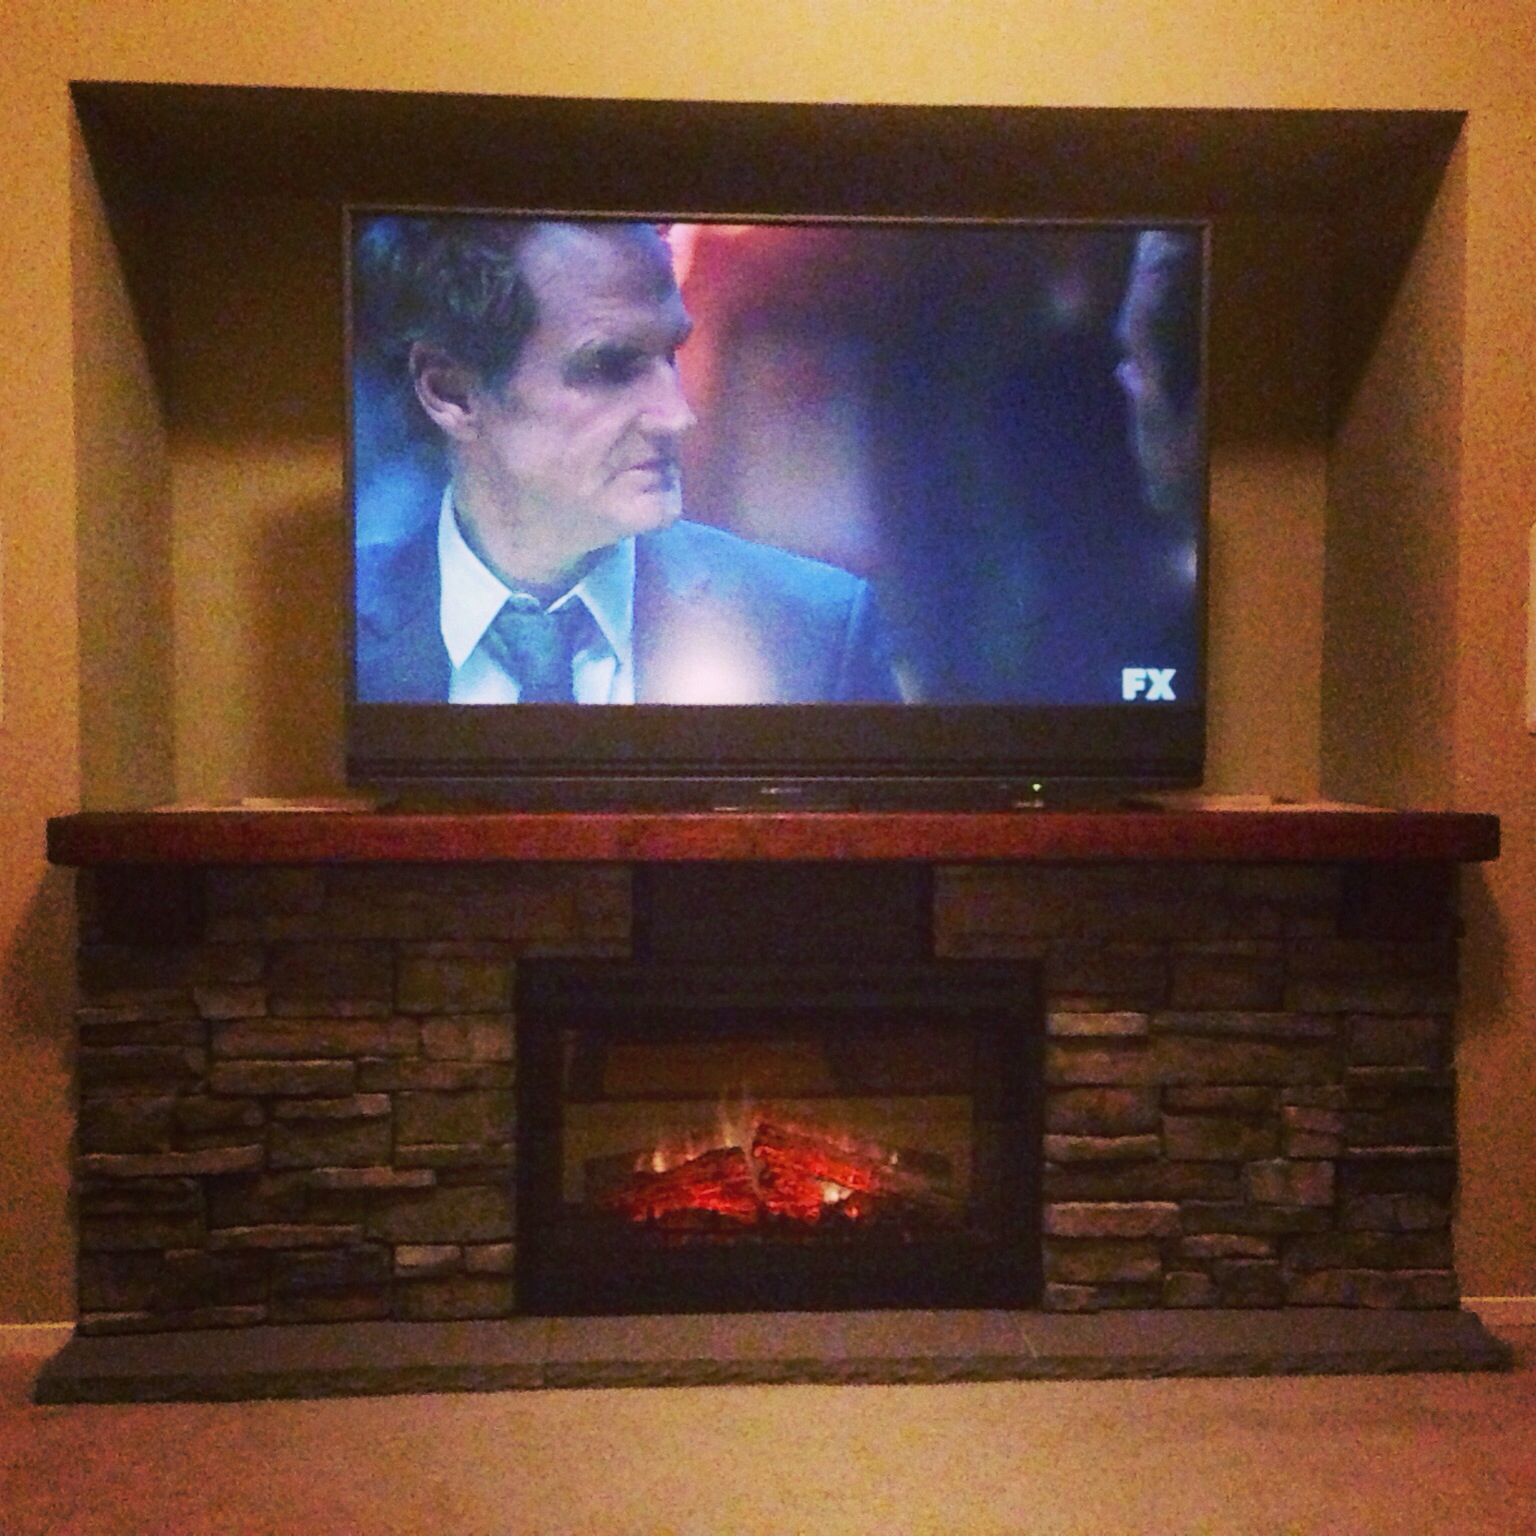 DIY Electric Fireplace / Hearth / TV stand. The components are hidden  behind the stonework - Amazon.com: Real Flame Hawthorne Electric Fireplace TV Stand In